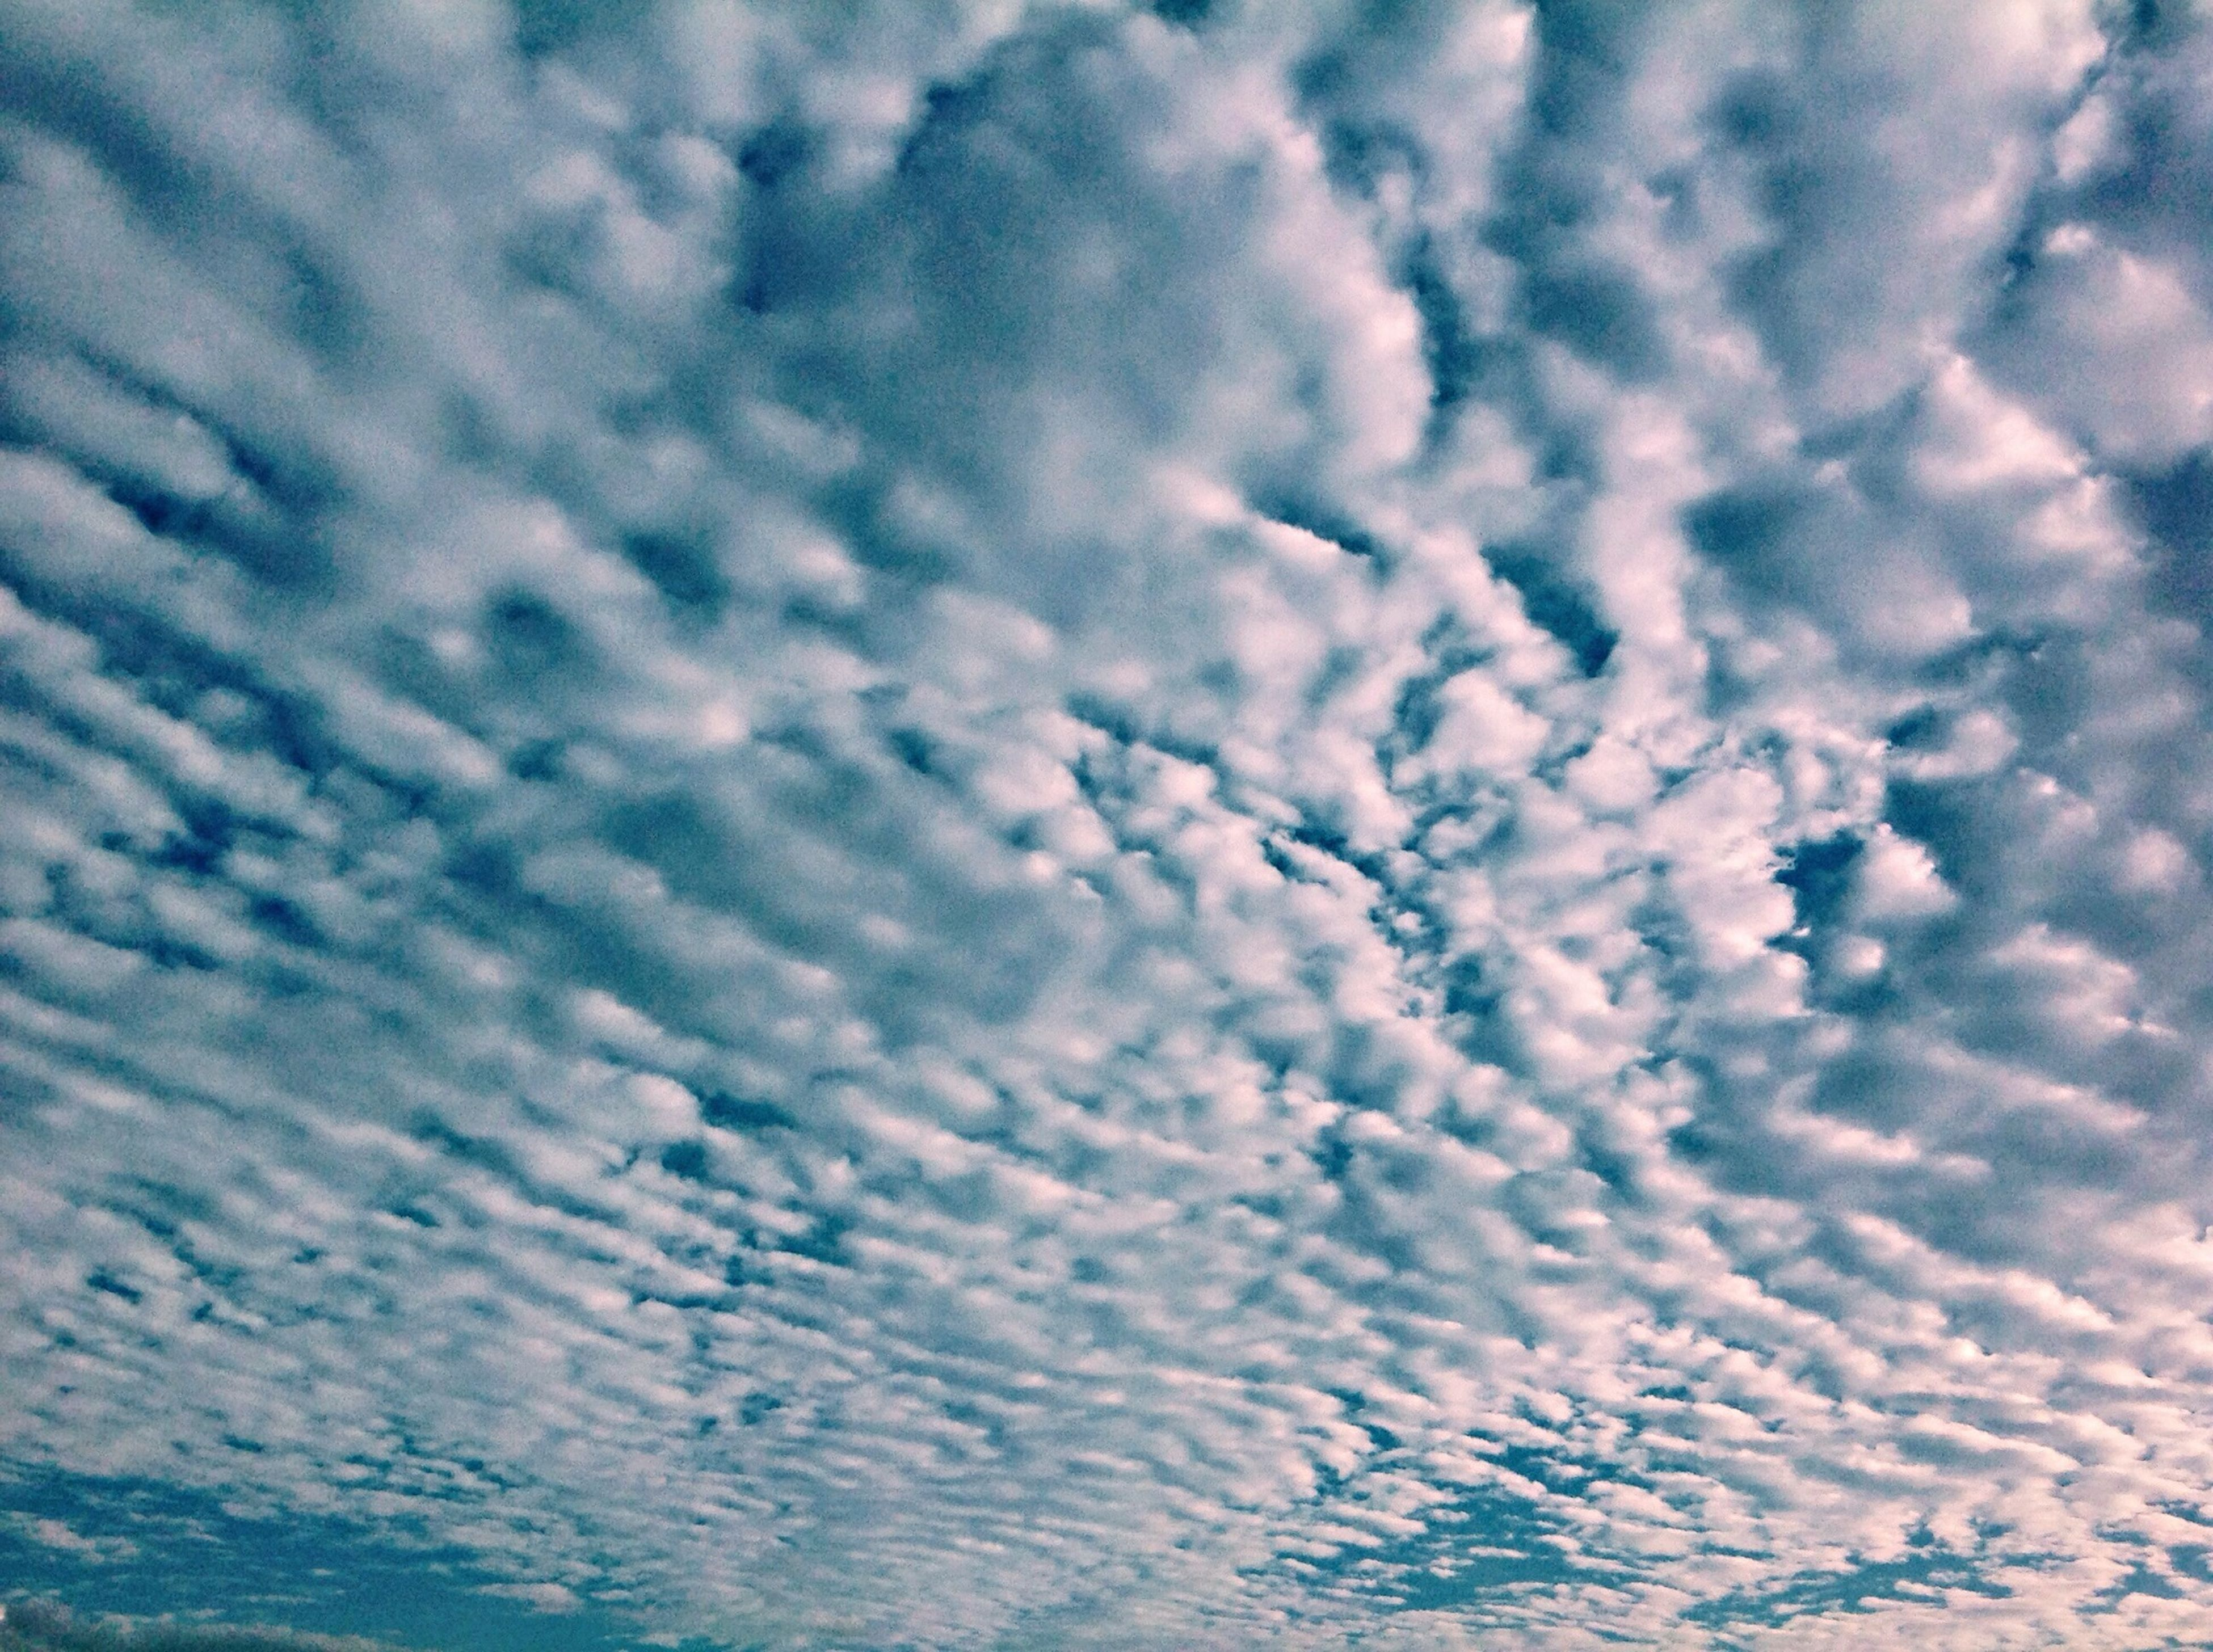 sky, cloud - sky, cloudy, tranquility, beauty in nature, tranquil scene, scenics, nature, cloud, backgrounds, low angle view, full frame, cloudscape, weather, idyllic, outdoors, no people, sky only, day, overcast